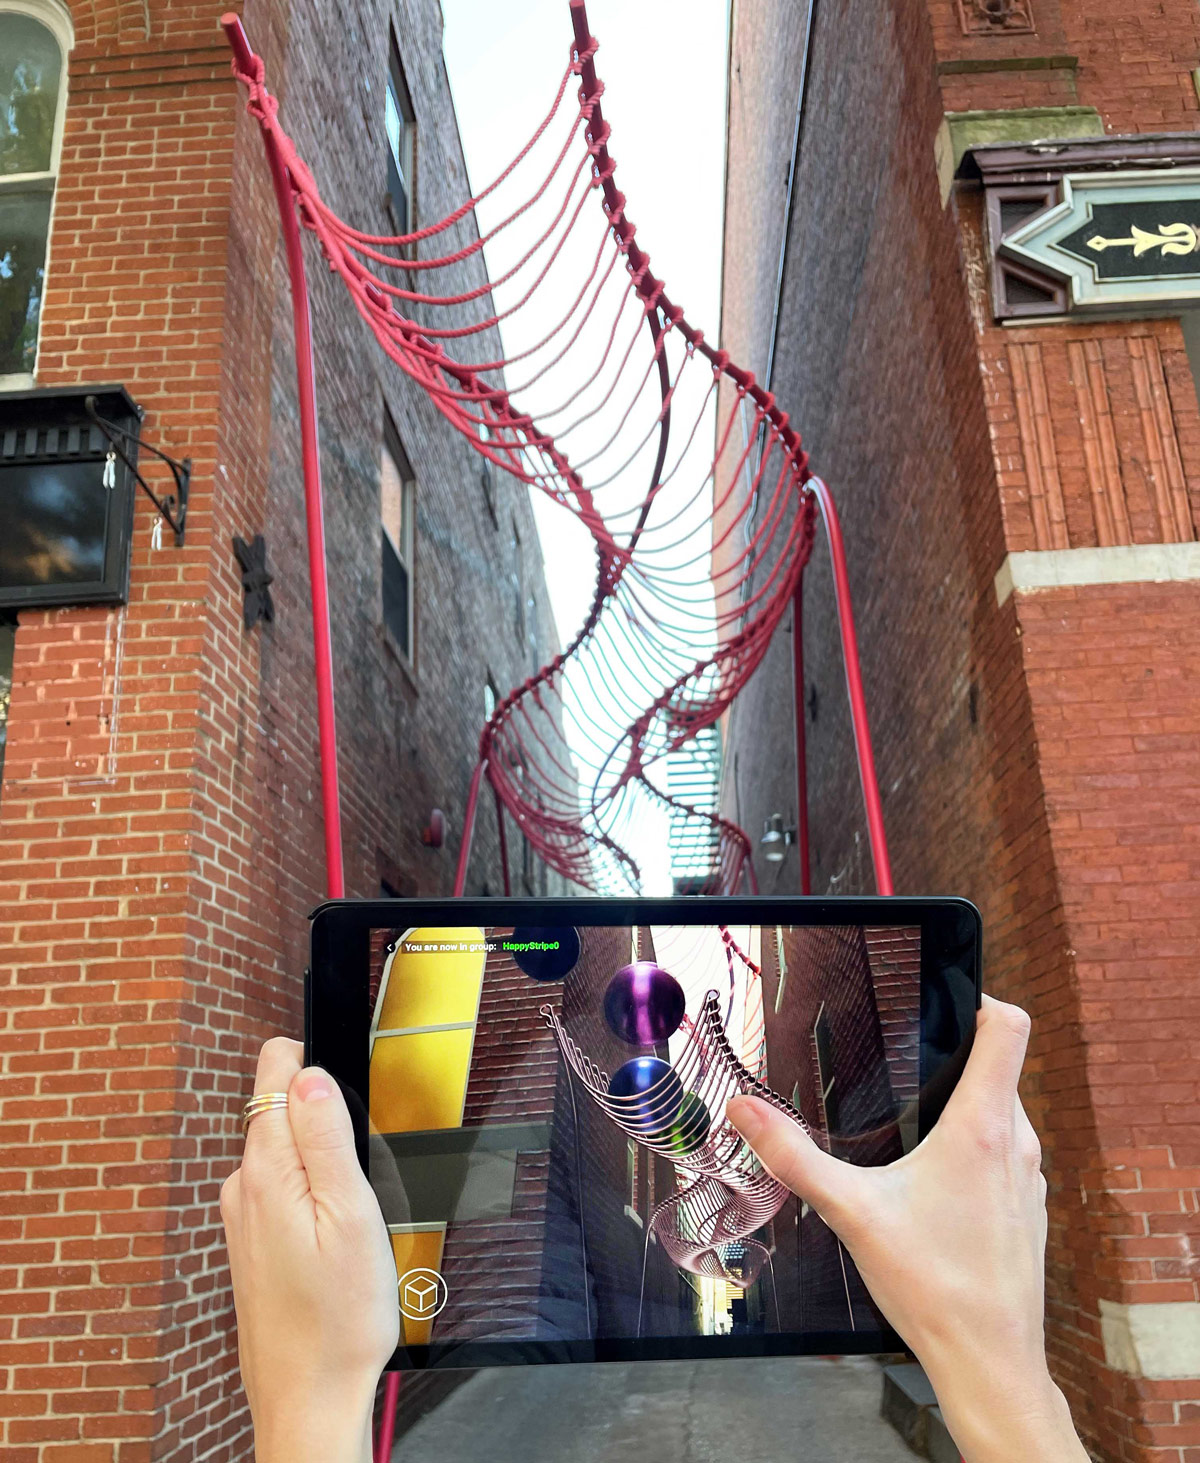 hands hold up an ipad to show the augmented reality of the physical world being captured through the app